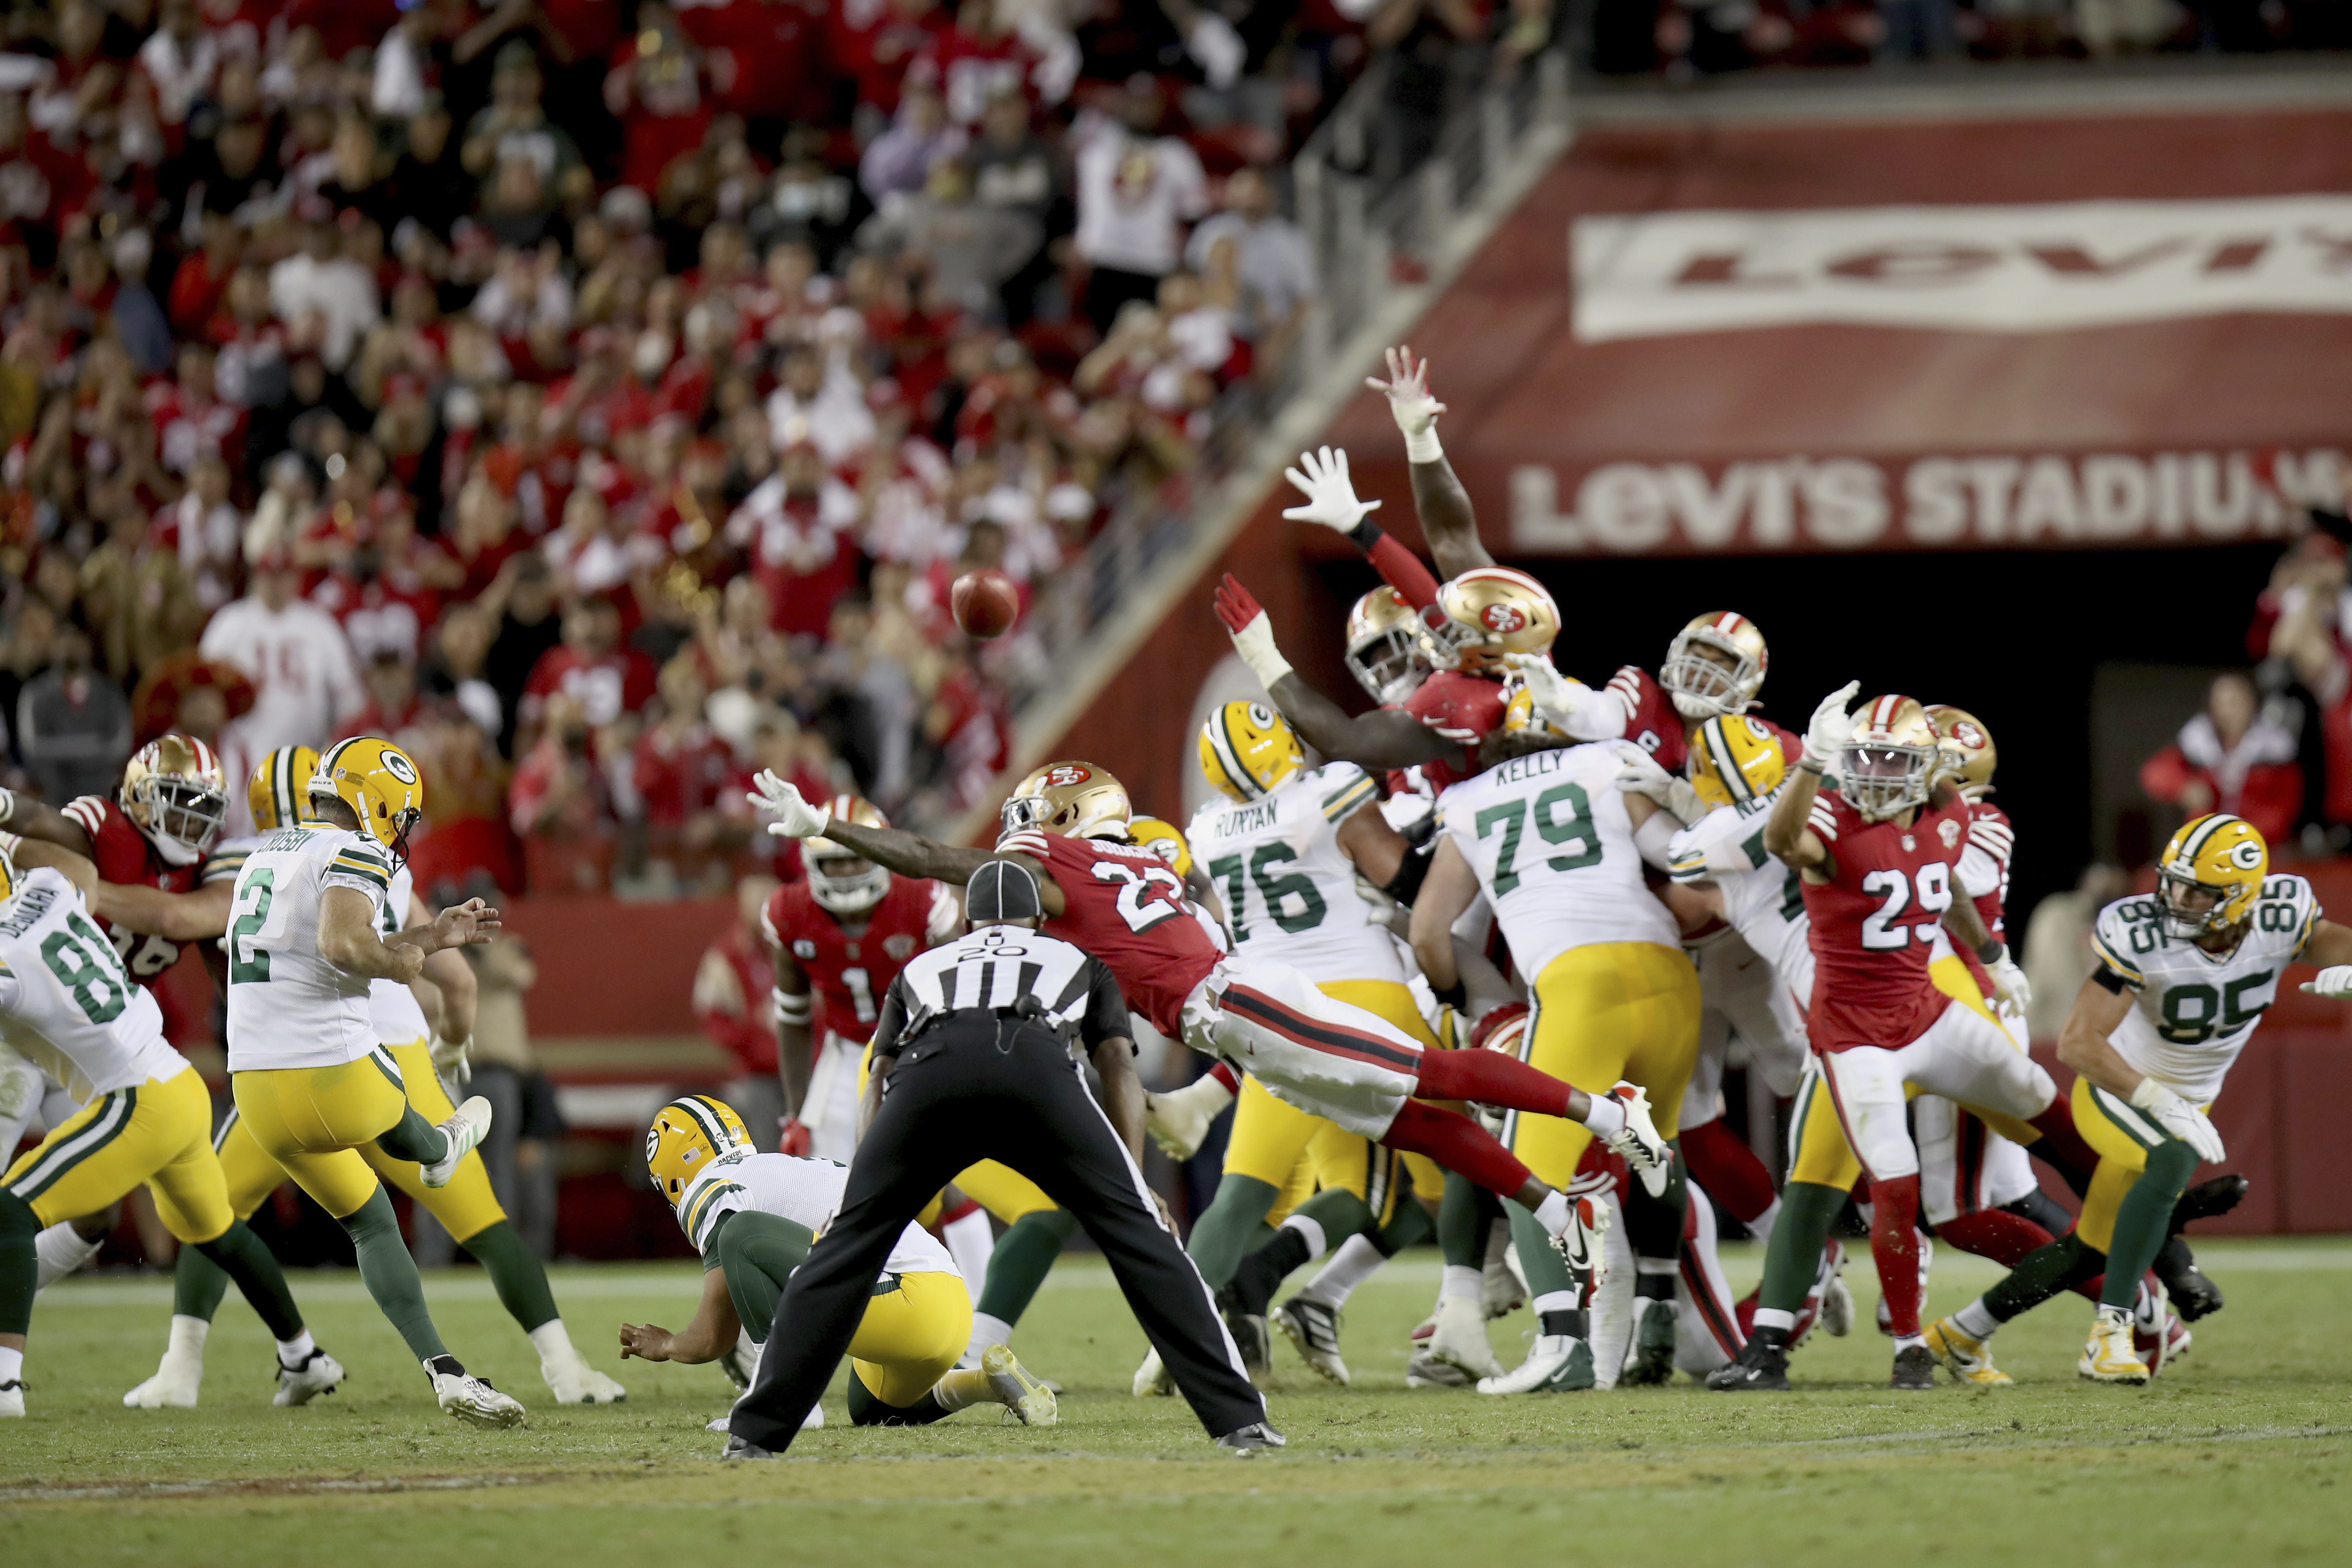 Green Bay Packers' Mason Crosby converts game-winning field goal in the fourth quarter against the San Francisco 49ers.